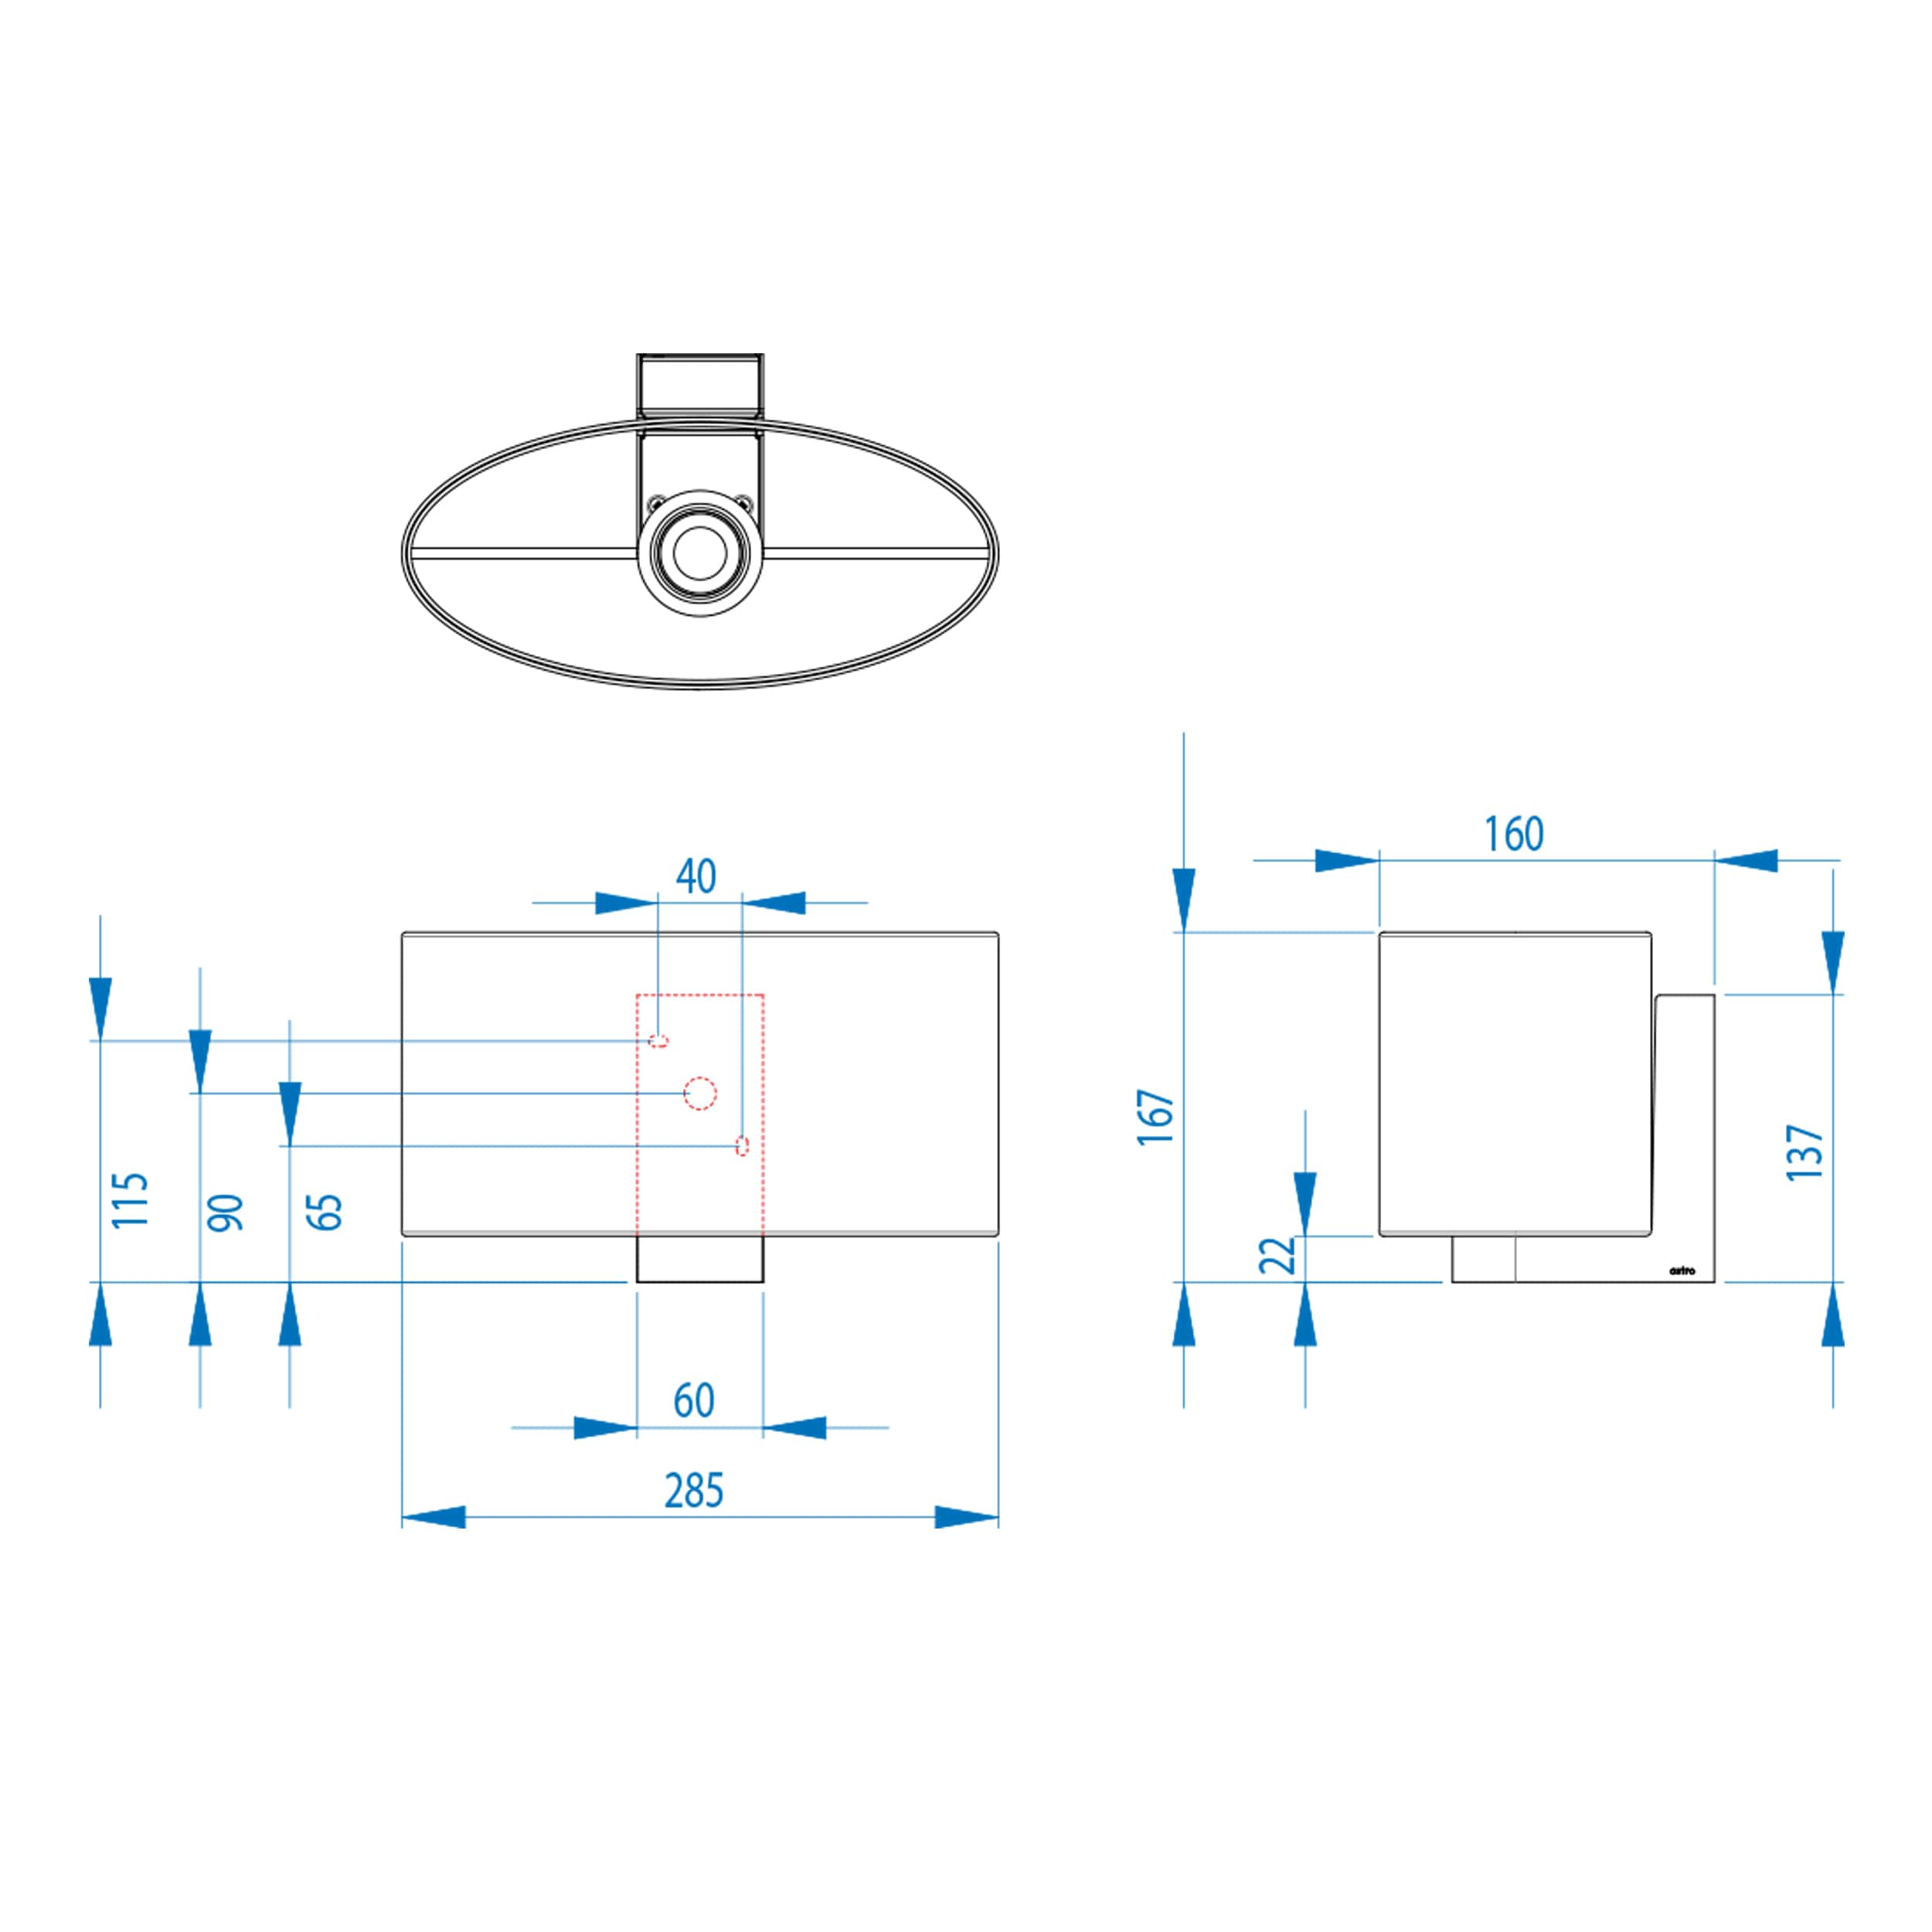 Astro Napoli Wall Ceiling Light Line Drawing